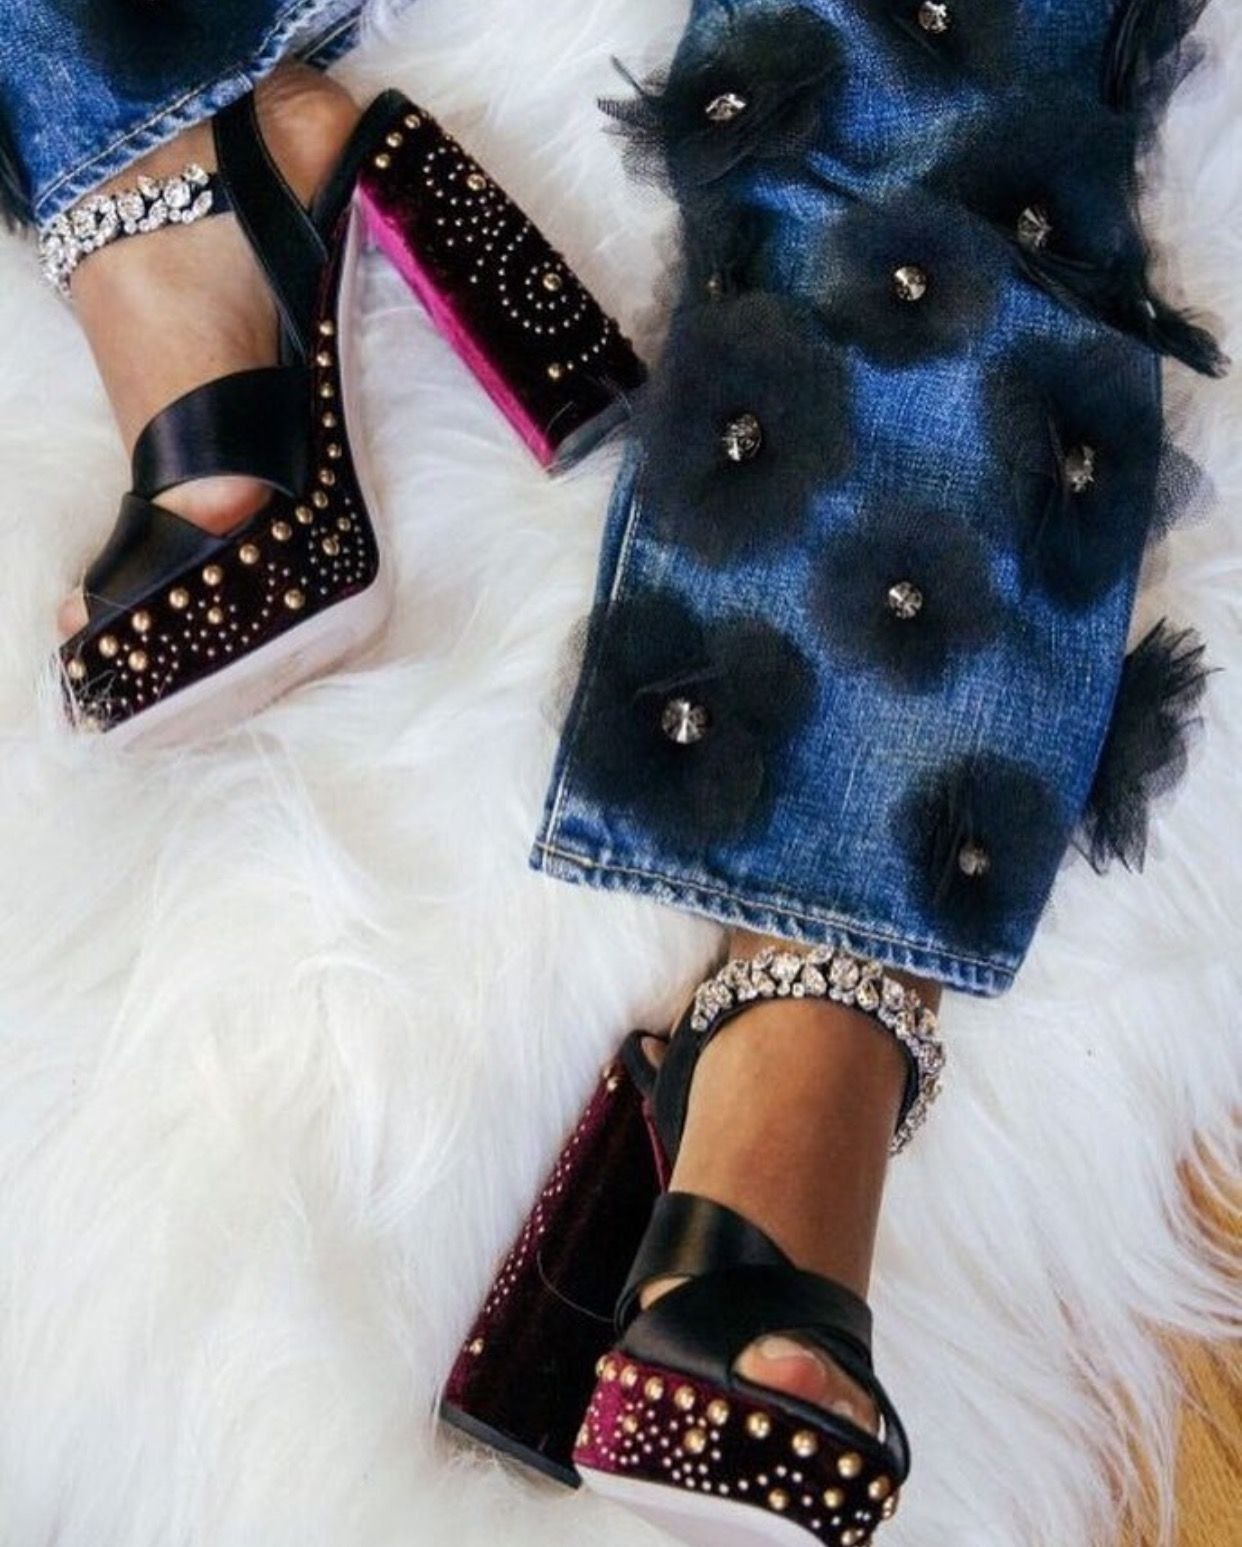 Pin by Cynthia M on Shoes (With images) | Preppy fall ...